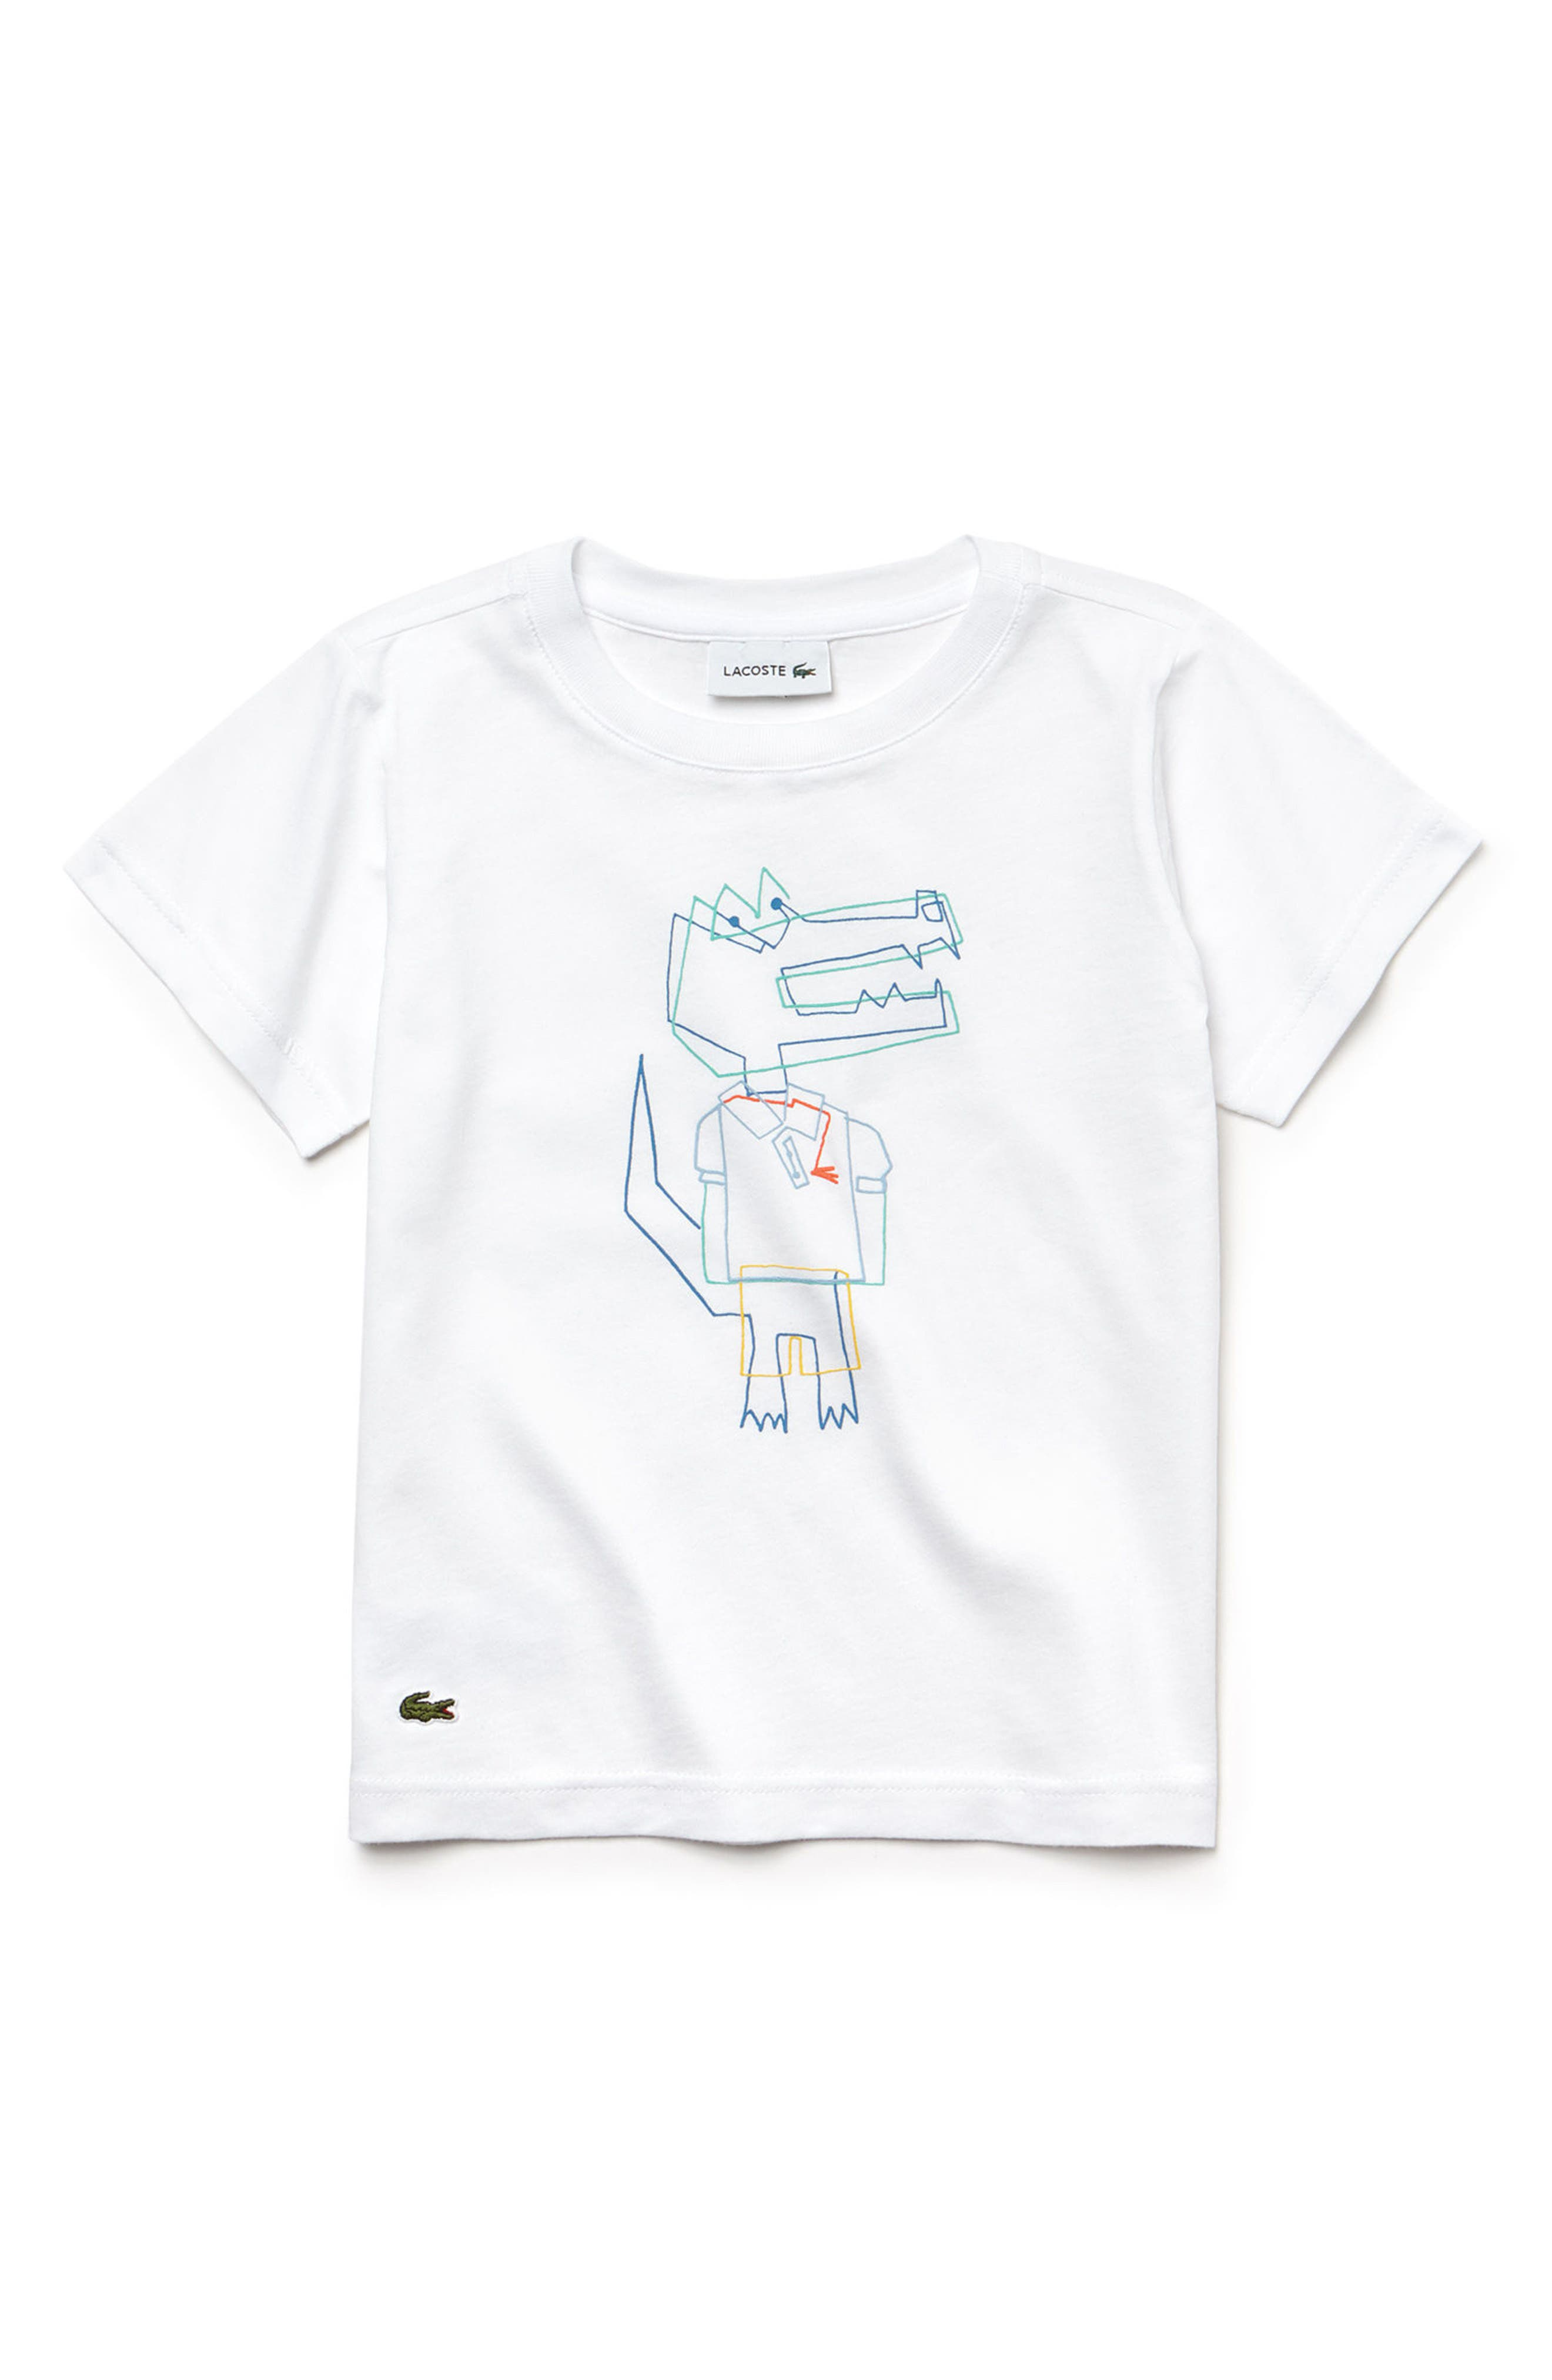 Alternate Image 1 Selected - Lacoste Crocoline Graphic T-Shirt (Toddler Boys & Little Boys)